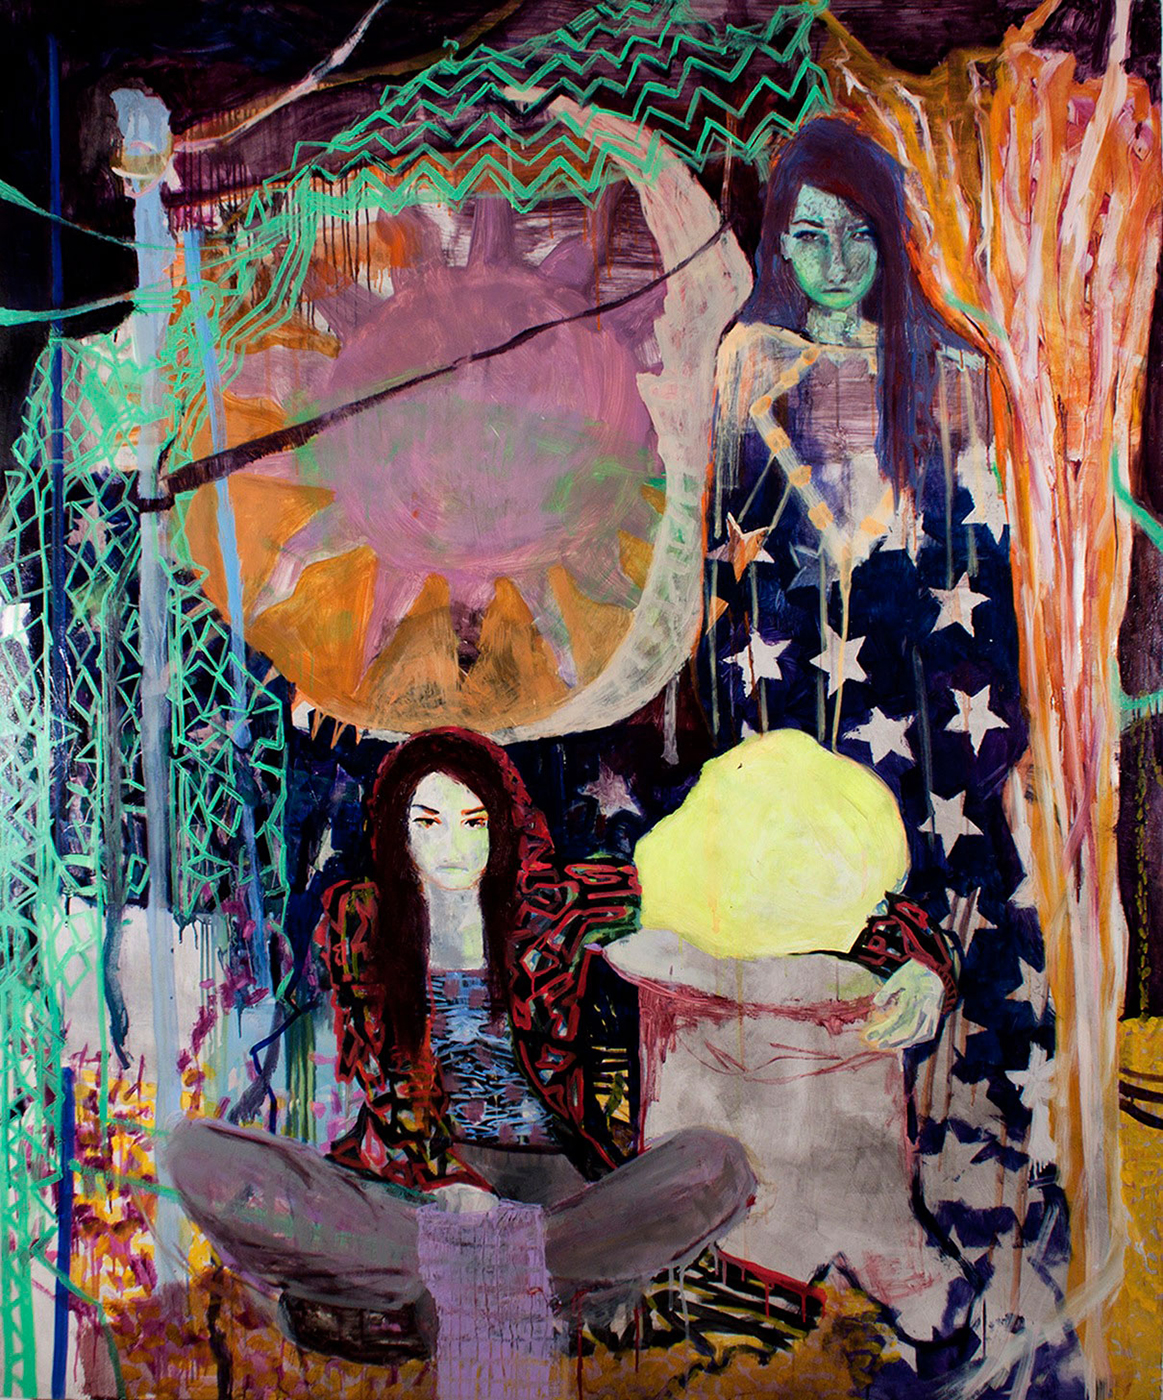 Possessives / 2010, oil on canvas, 200 x 165 cm